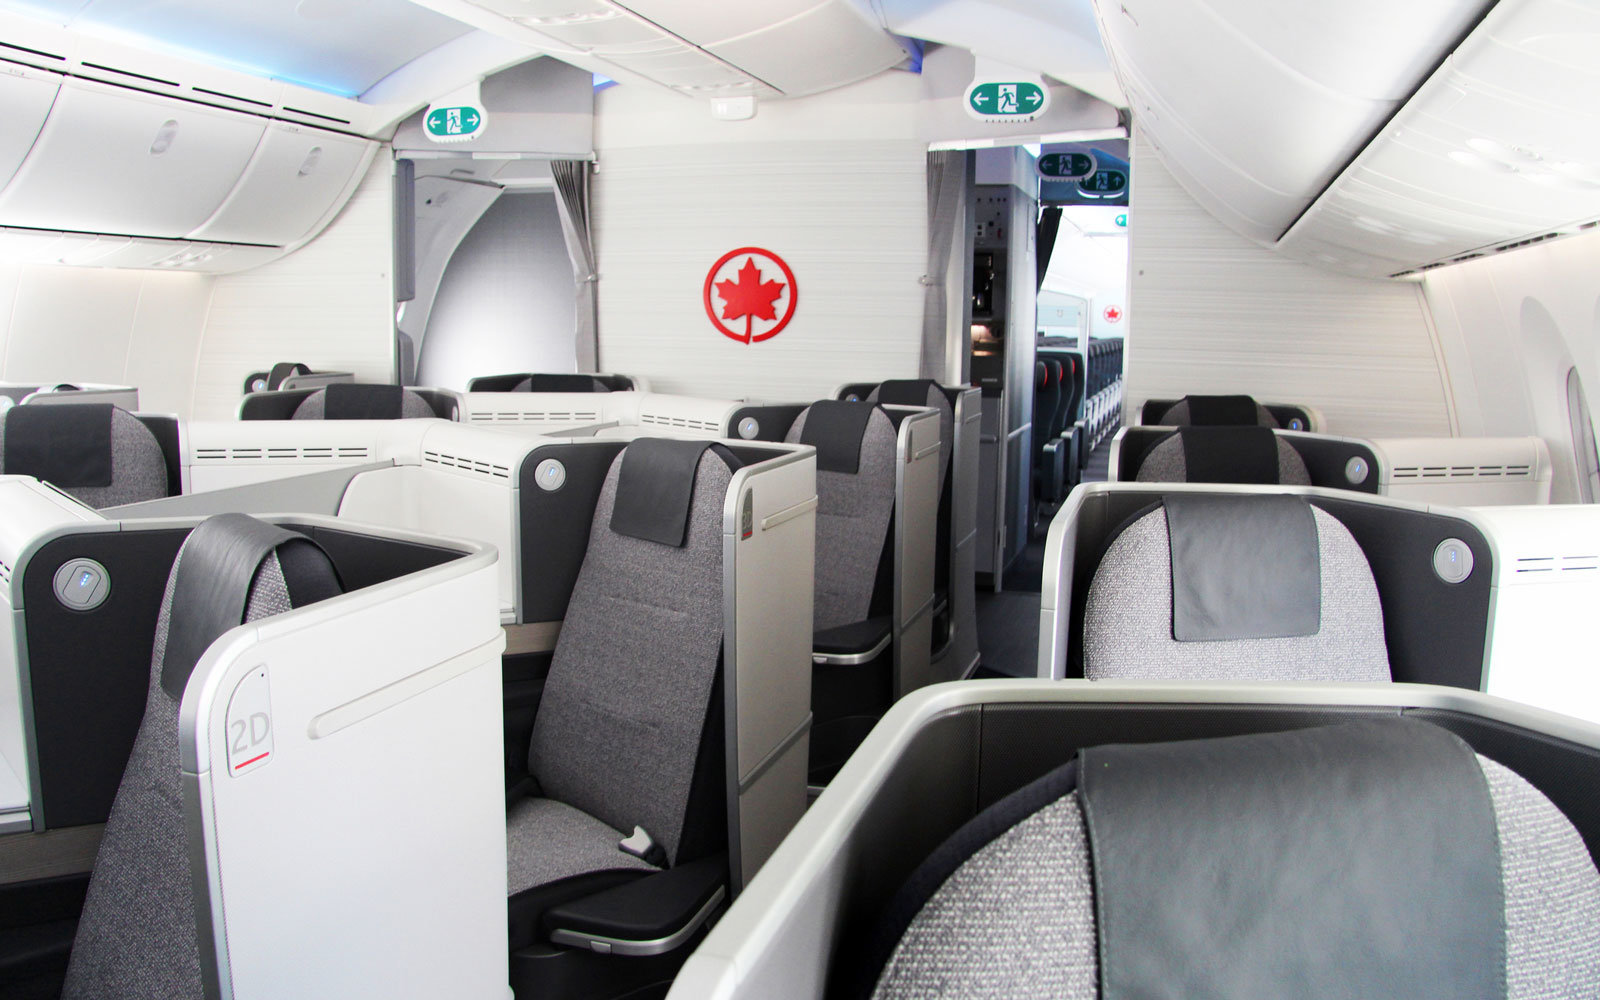 Air Canada is not putting seat upgrades up for auction.